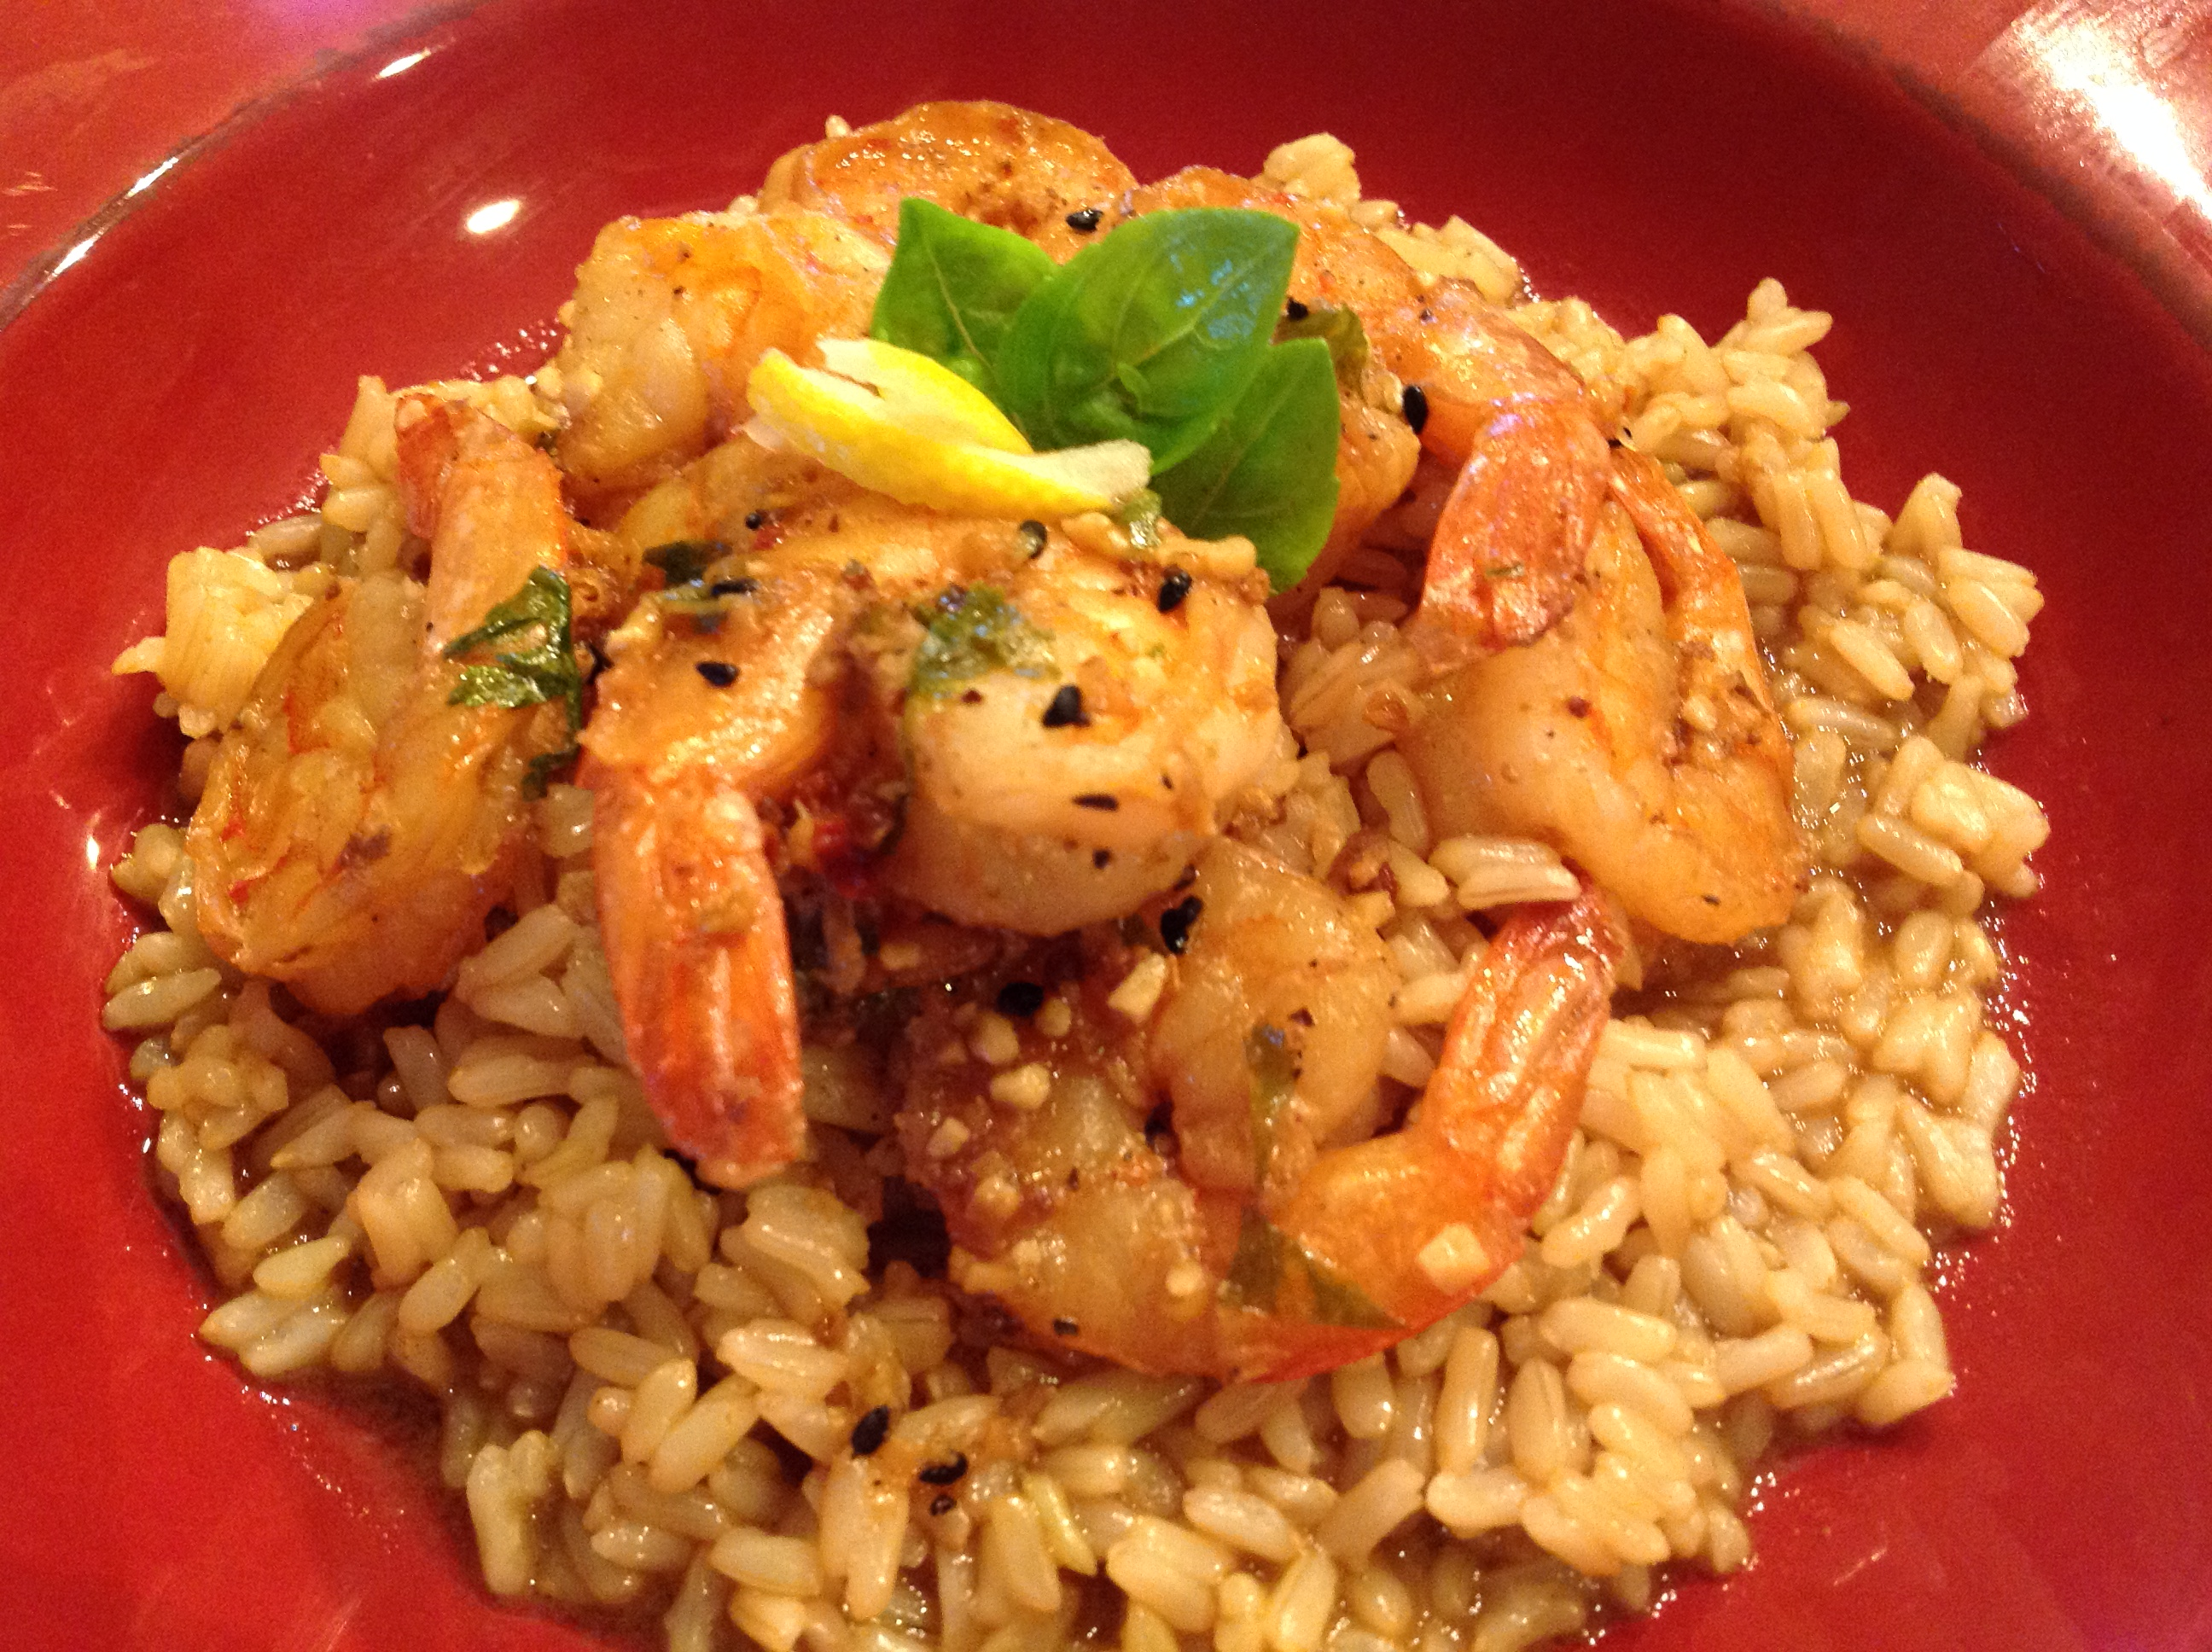 shrimp Archives - Jan Tilley & Associates; San Antonio Dietitian